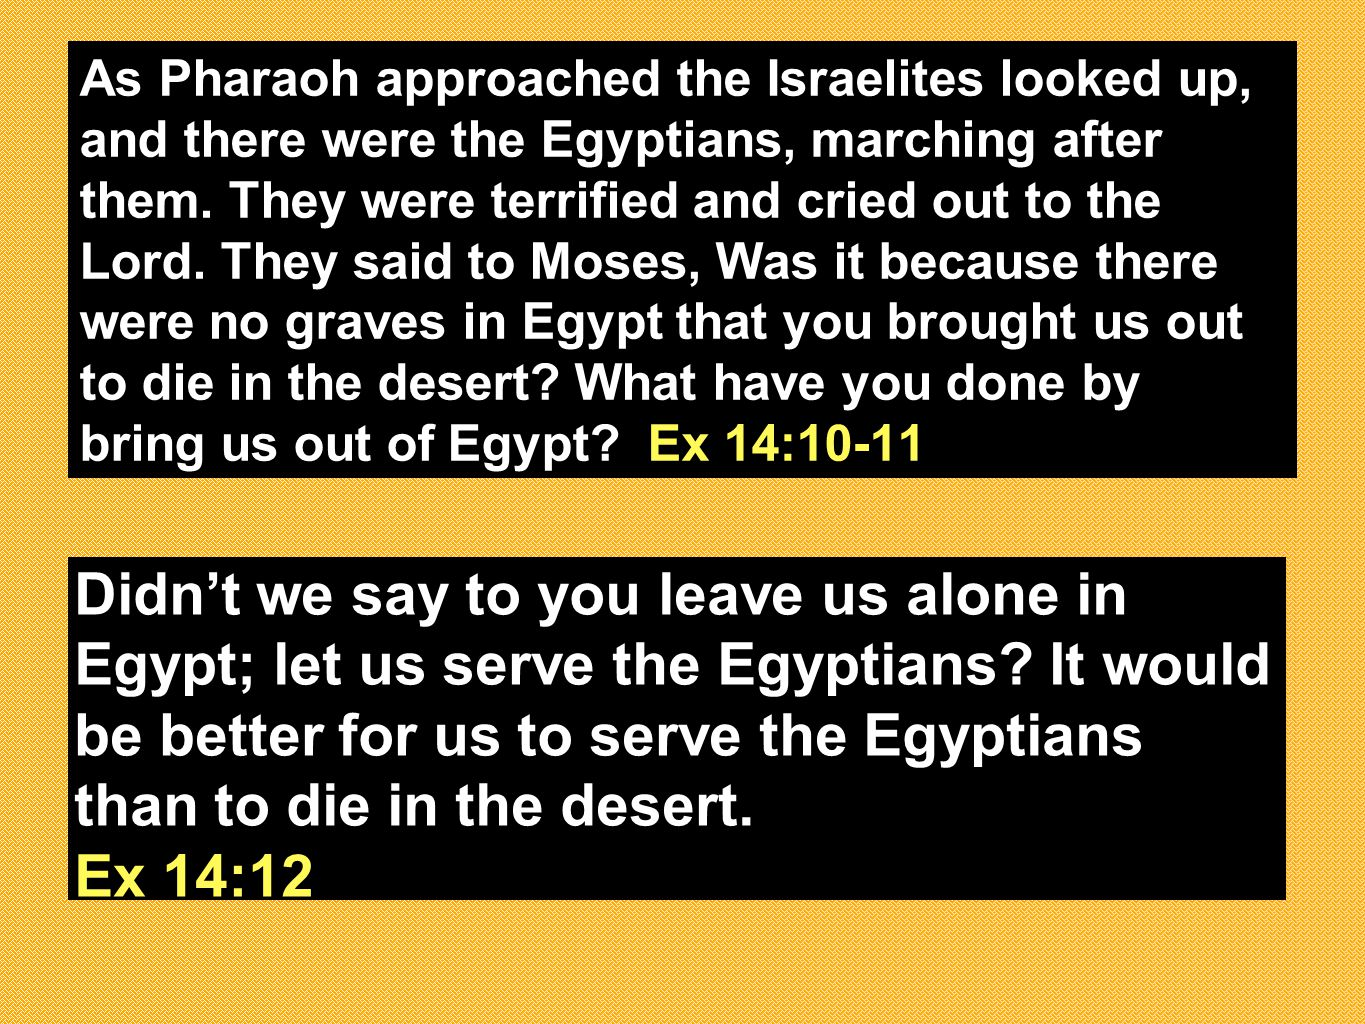 As Pharaoh approached the Israelites looked up, and there were the Egyptians, marching after them.